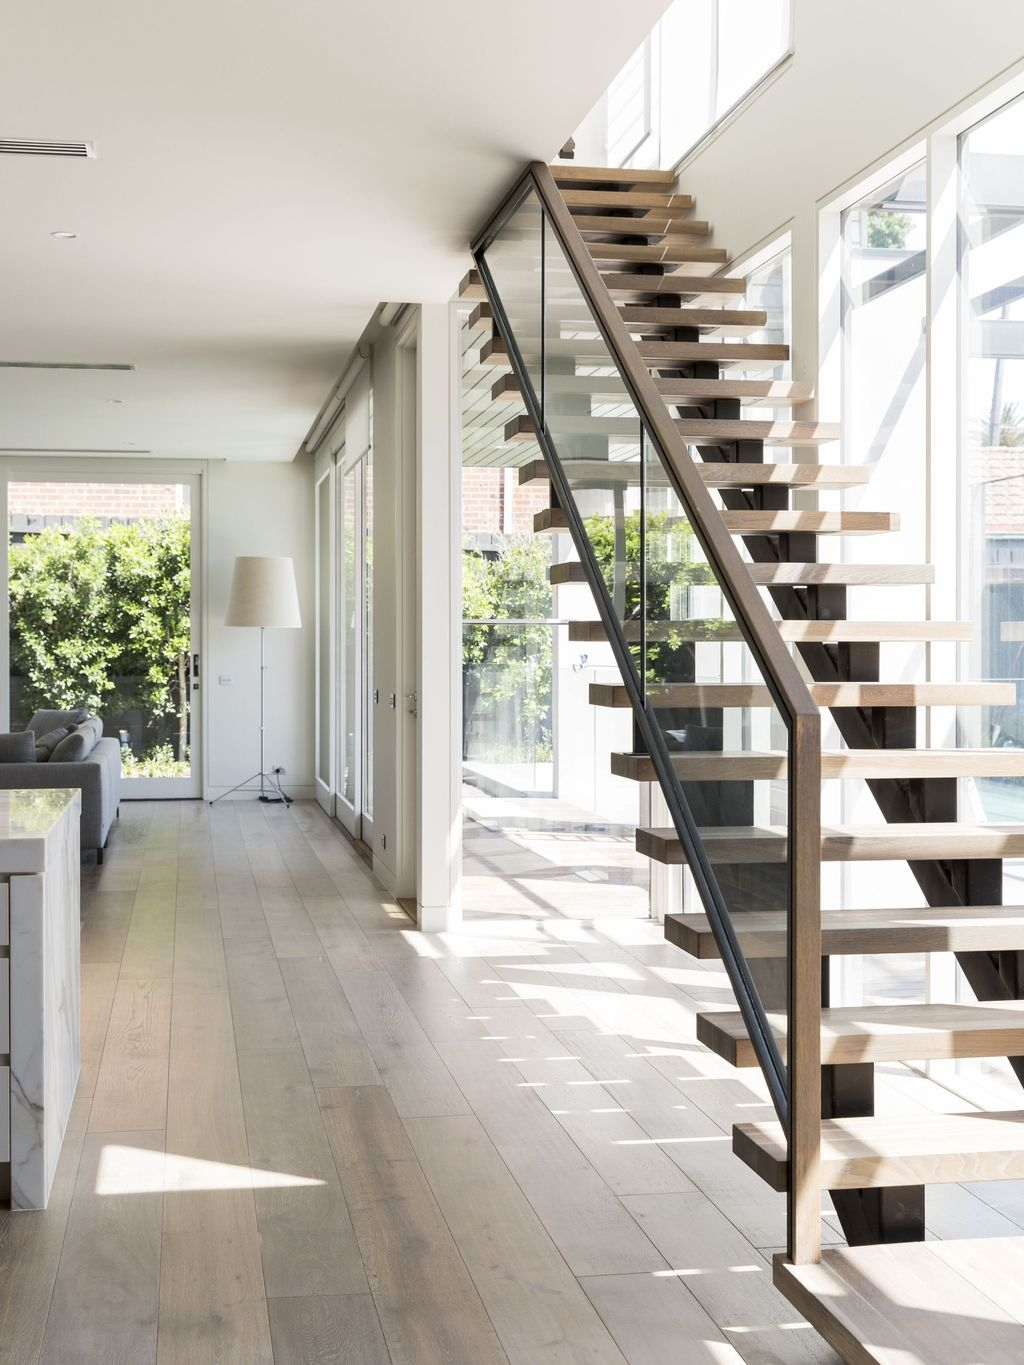 Cool Indoor Stair Design Ideas You Must See12